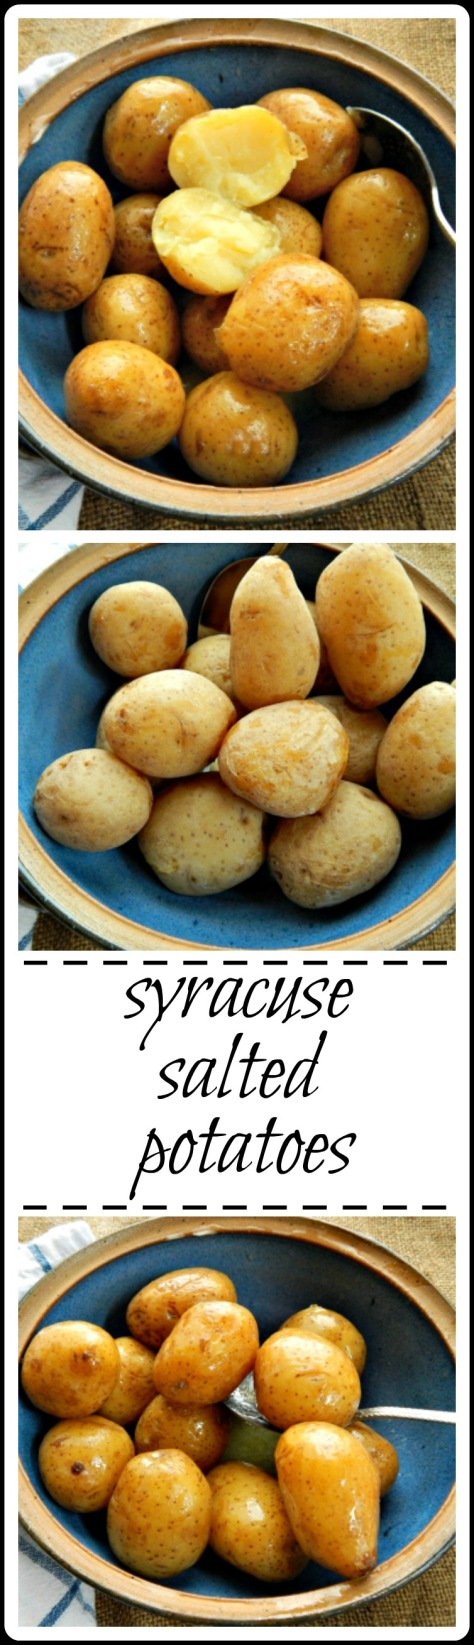 Syracuse Salted Potatoes - you'd think they'd be too salty but they're not! They're incredibly creamy and quite a treat!